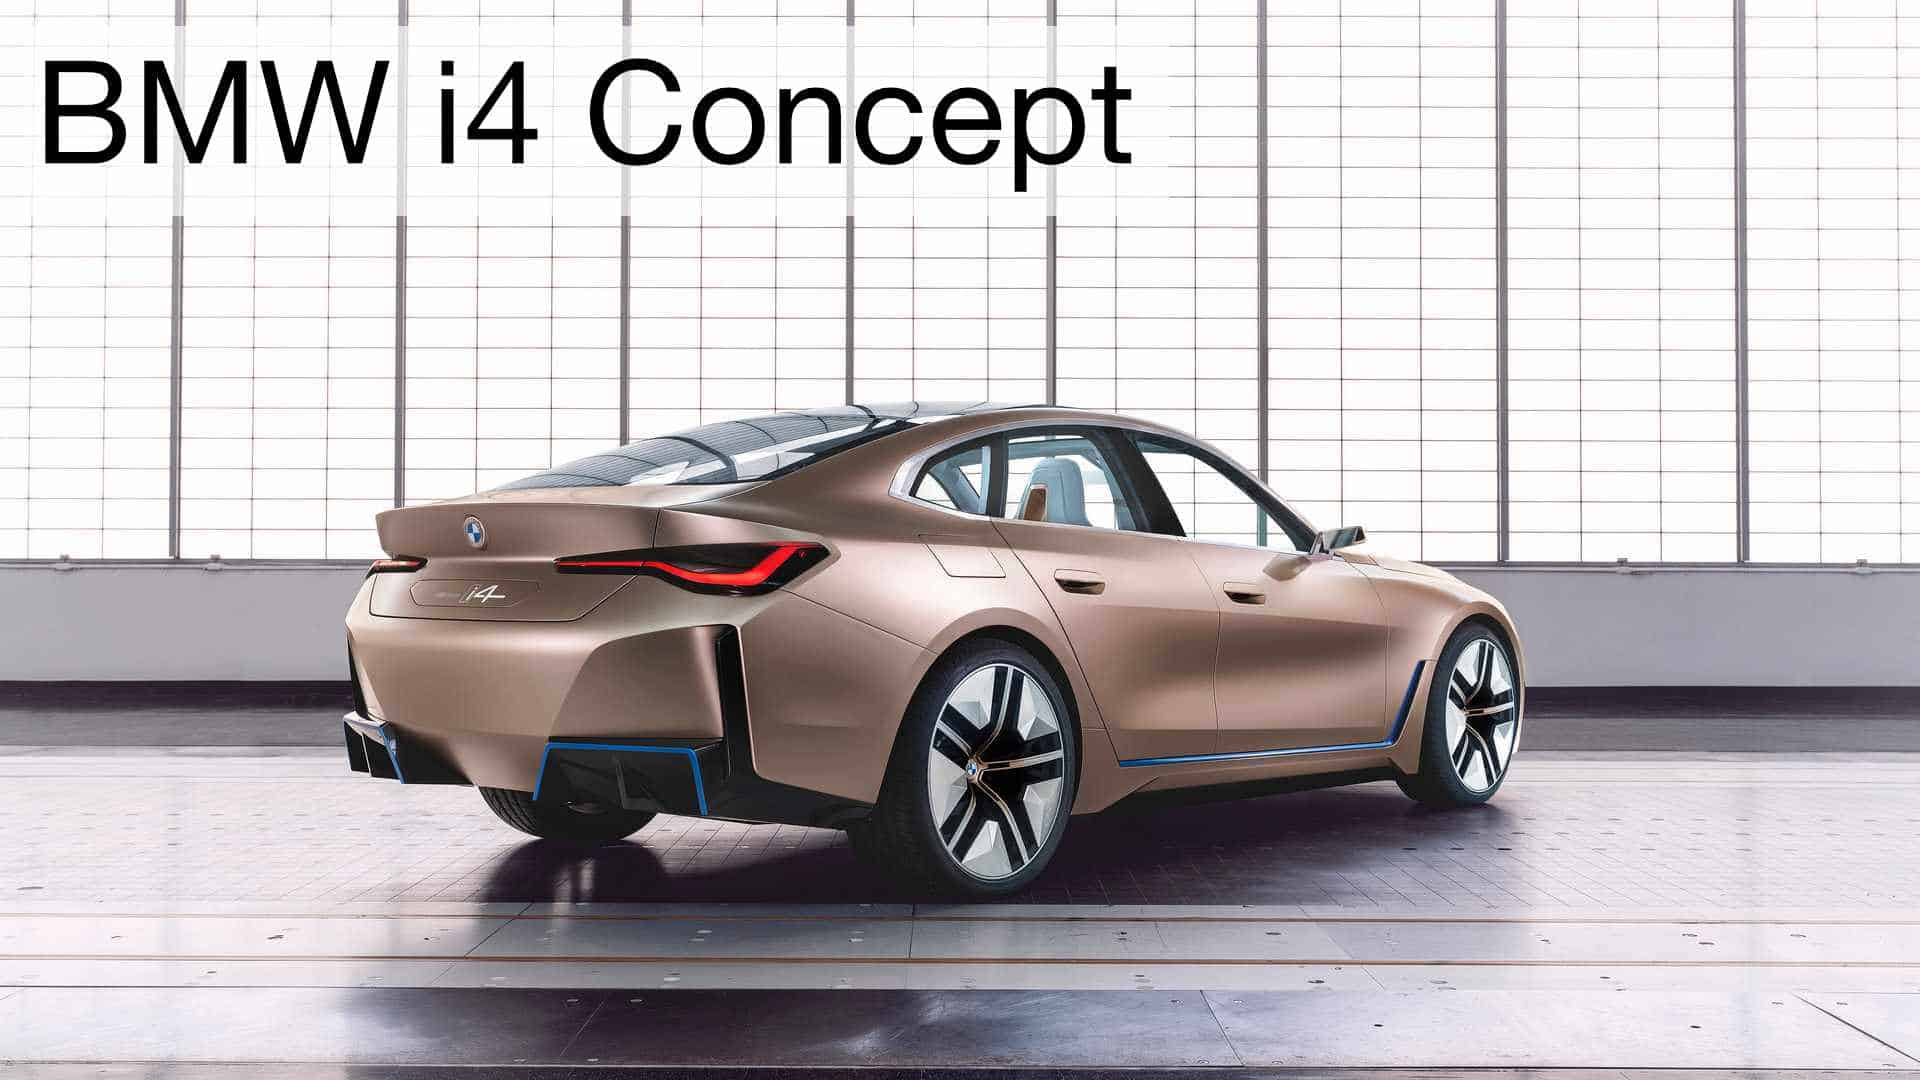 BMW i4 Concept Right Rear